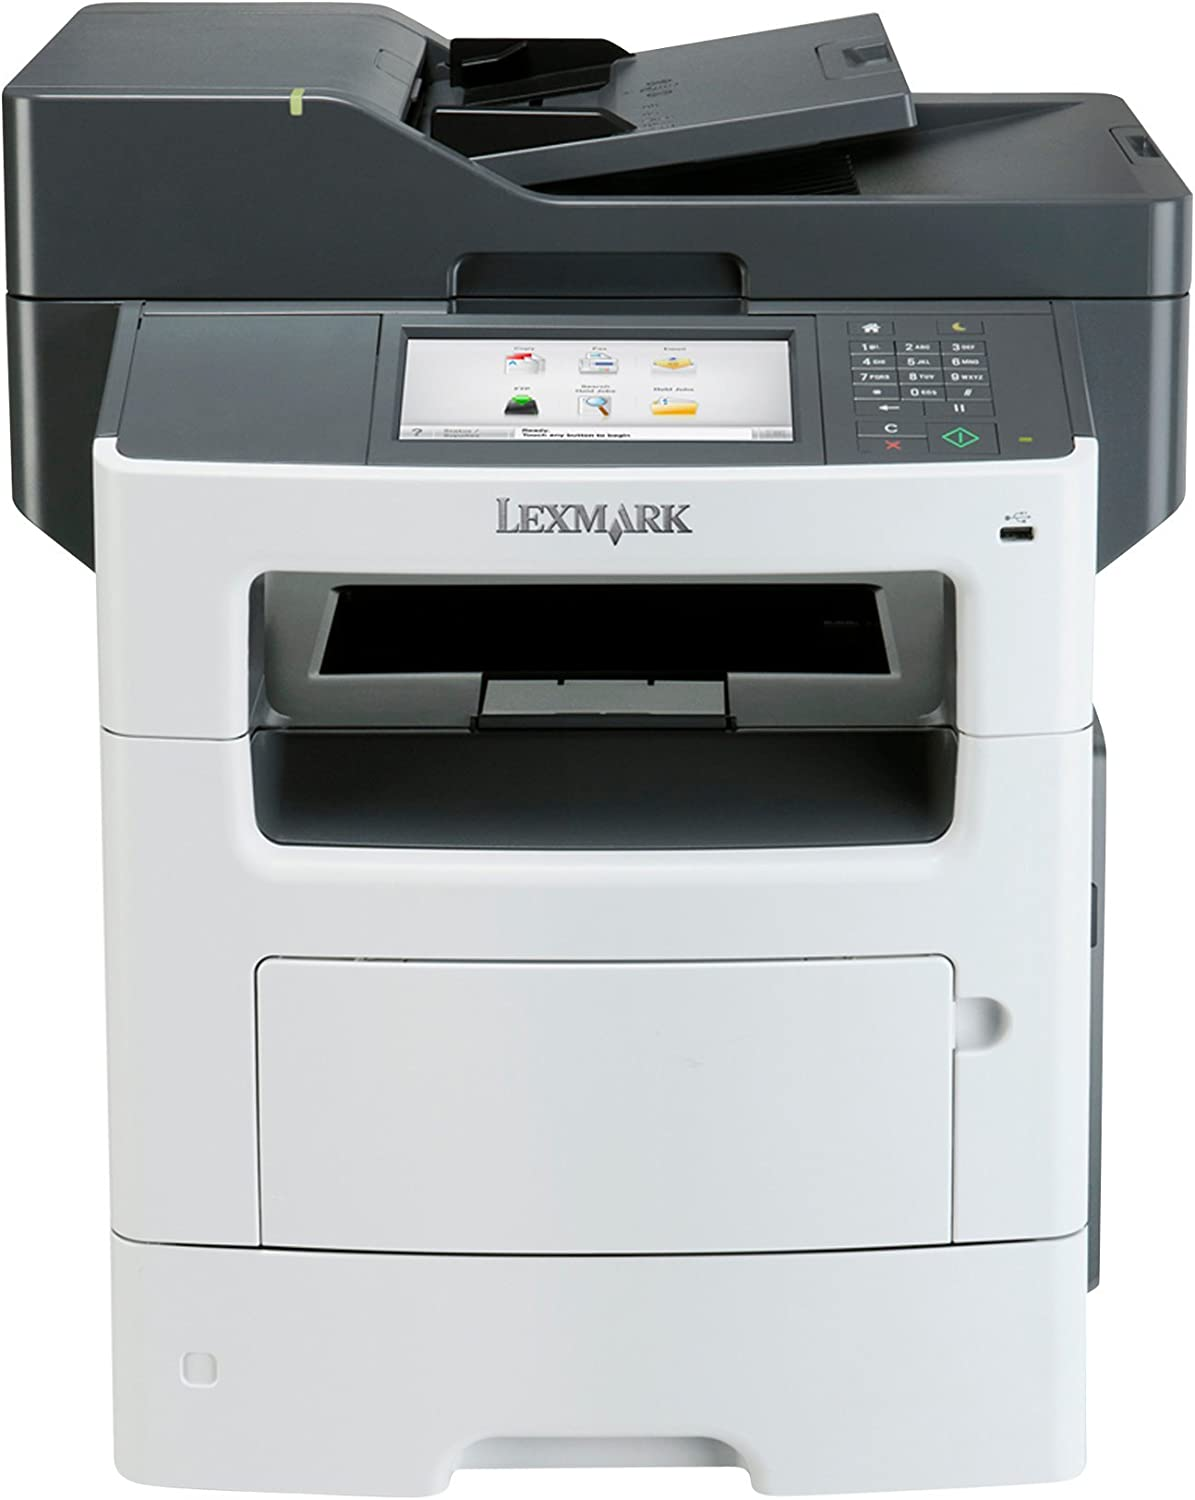 Lexmark MX611DE Monochrome Printer with Scanner, Copier and Fax - 35S6701,Gray/white